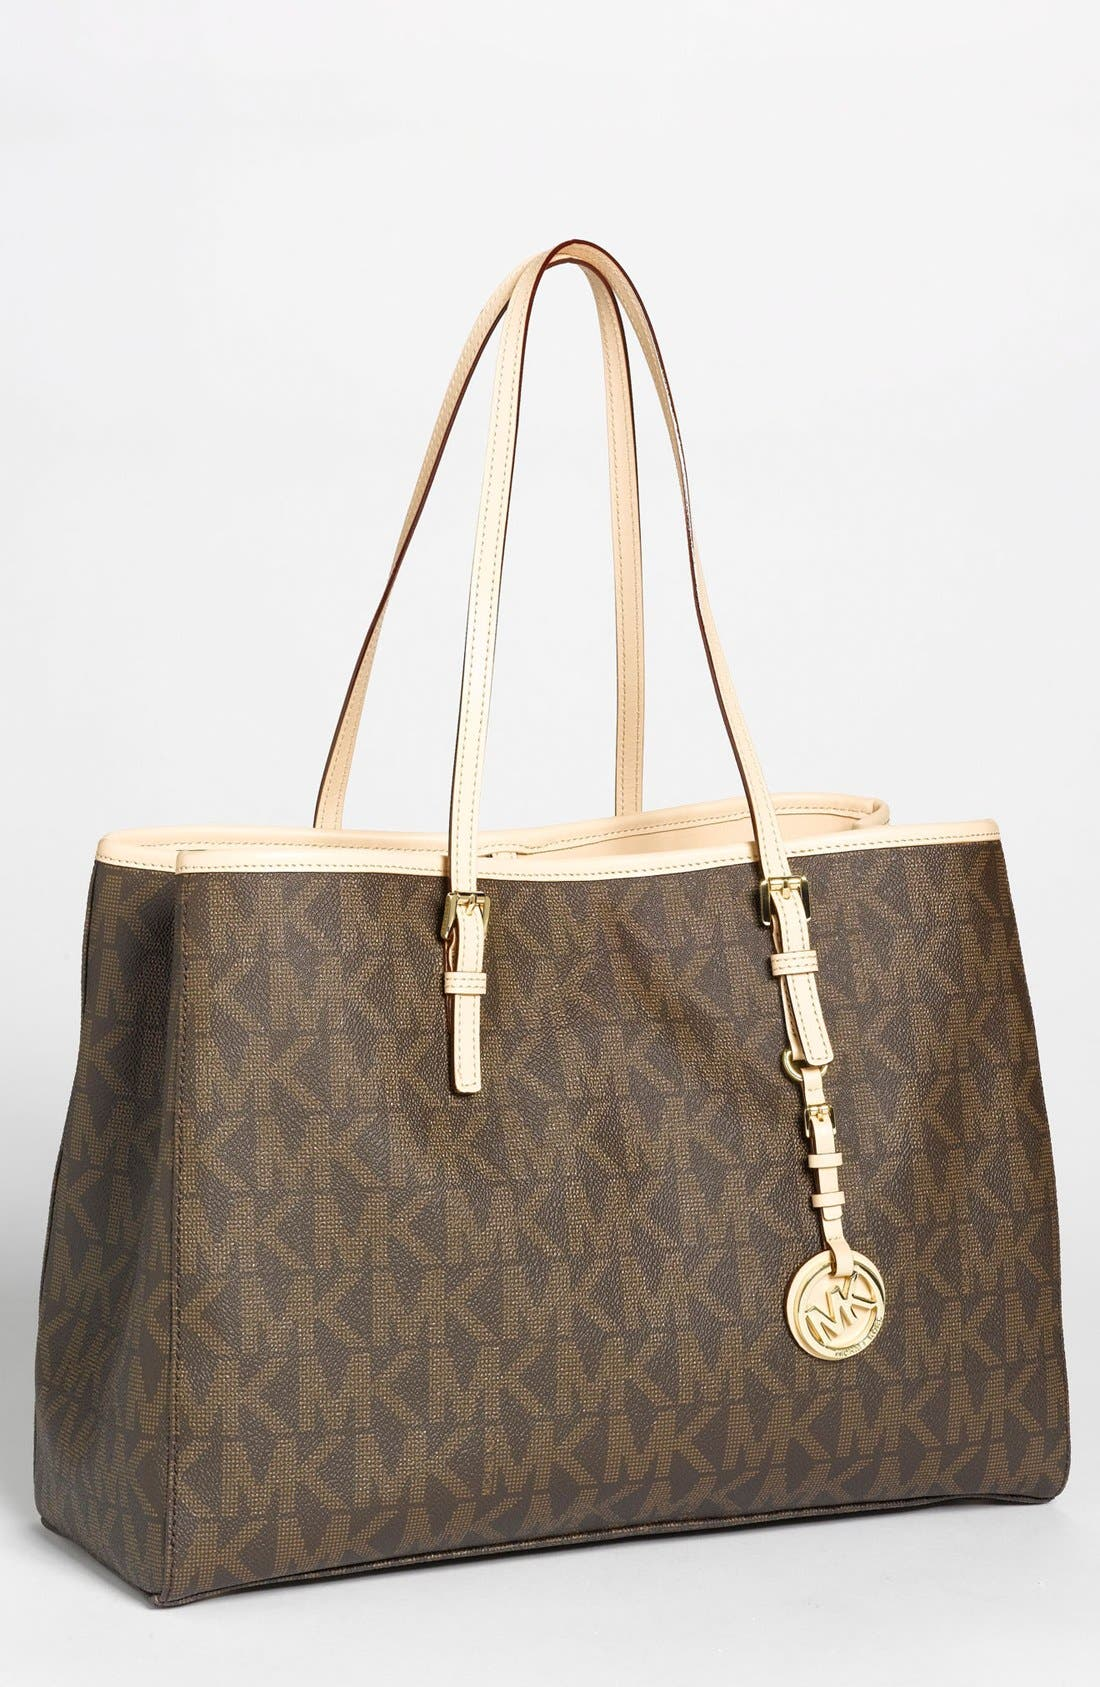 Alternate Image 1 Selected - MICHAEL Michael Kors 'East/West - Large' Tote